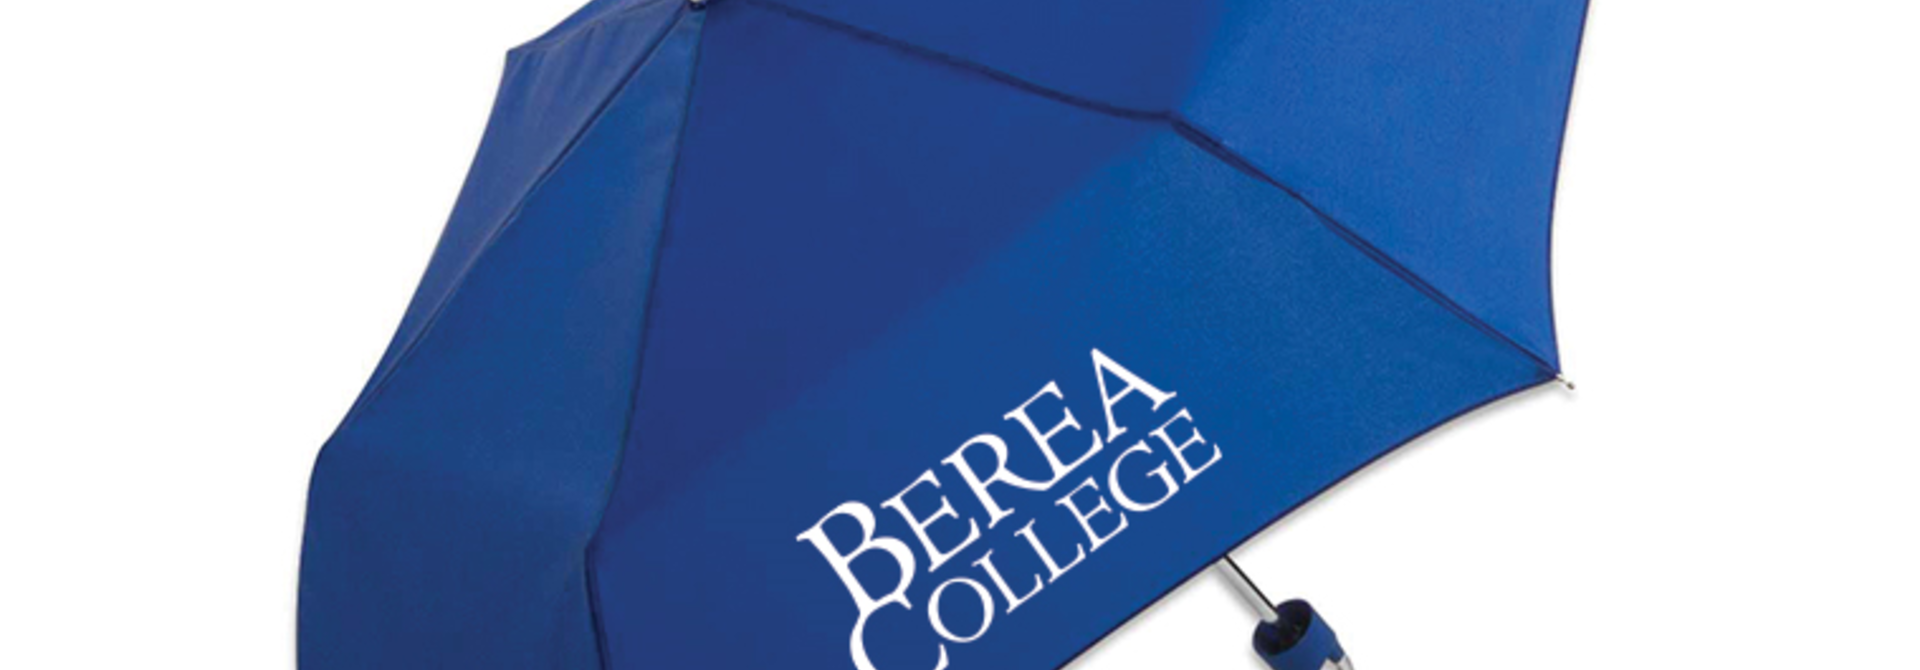 Royal Compact Berea College Umbrella